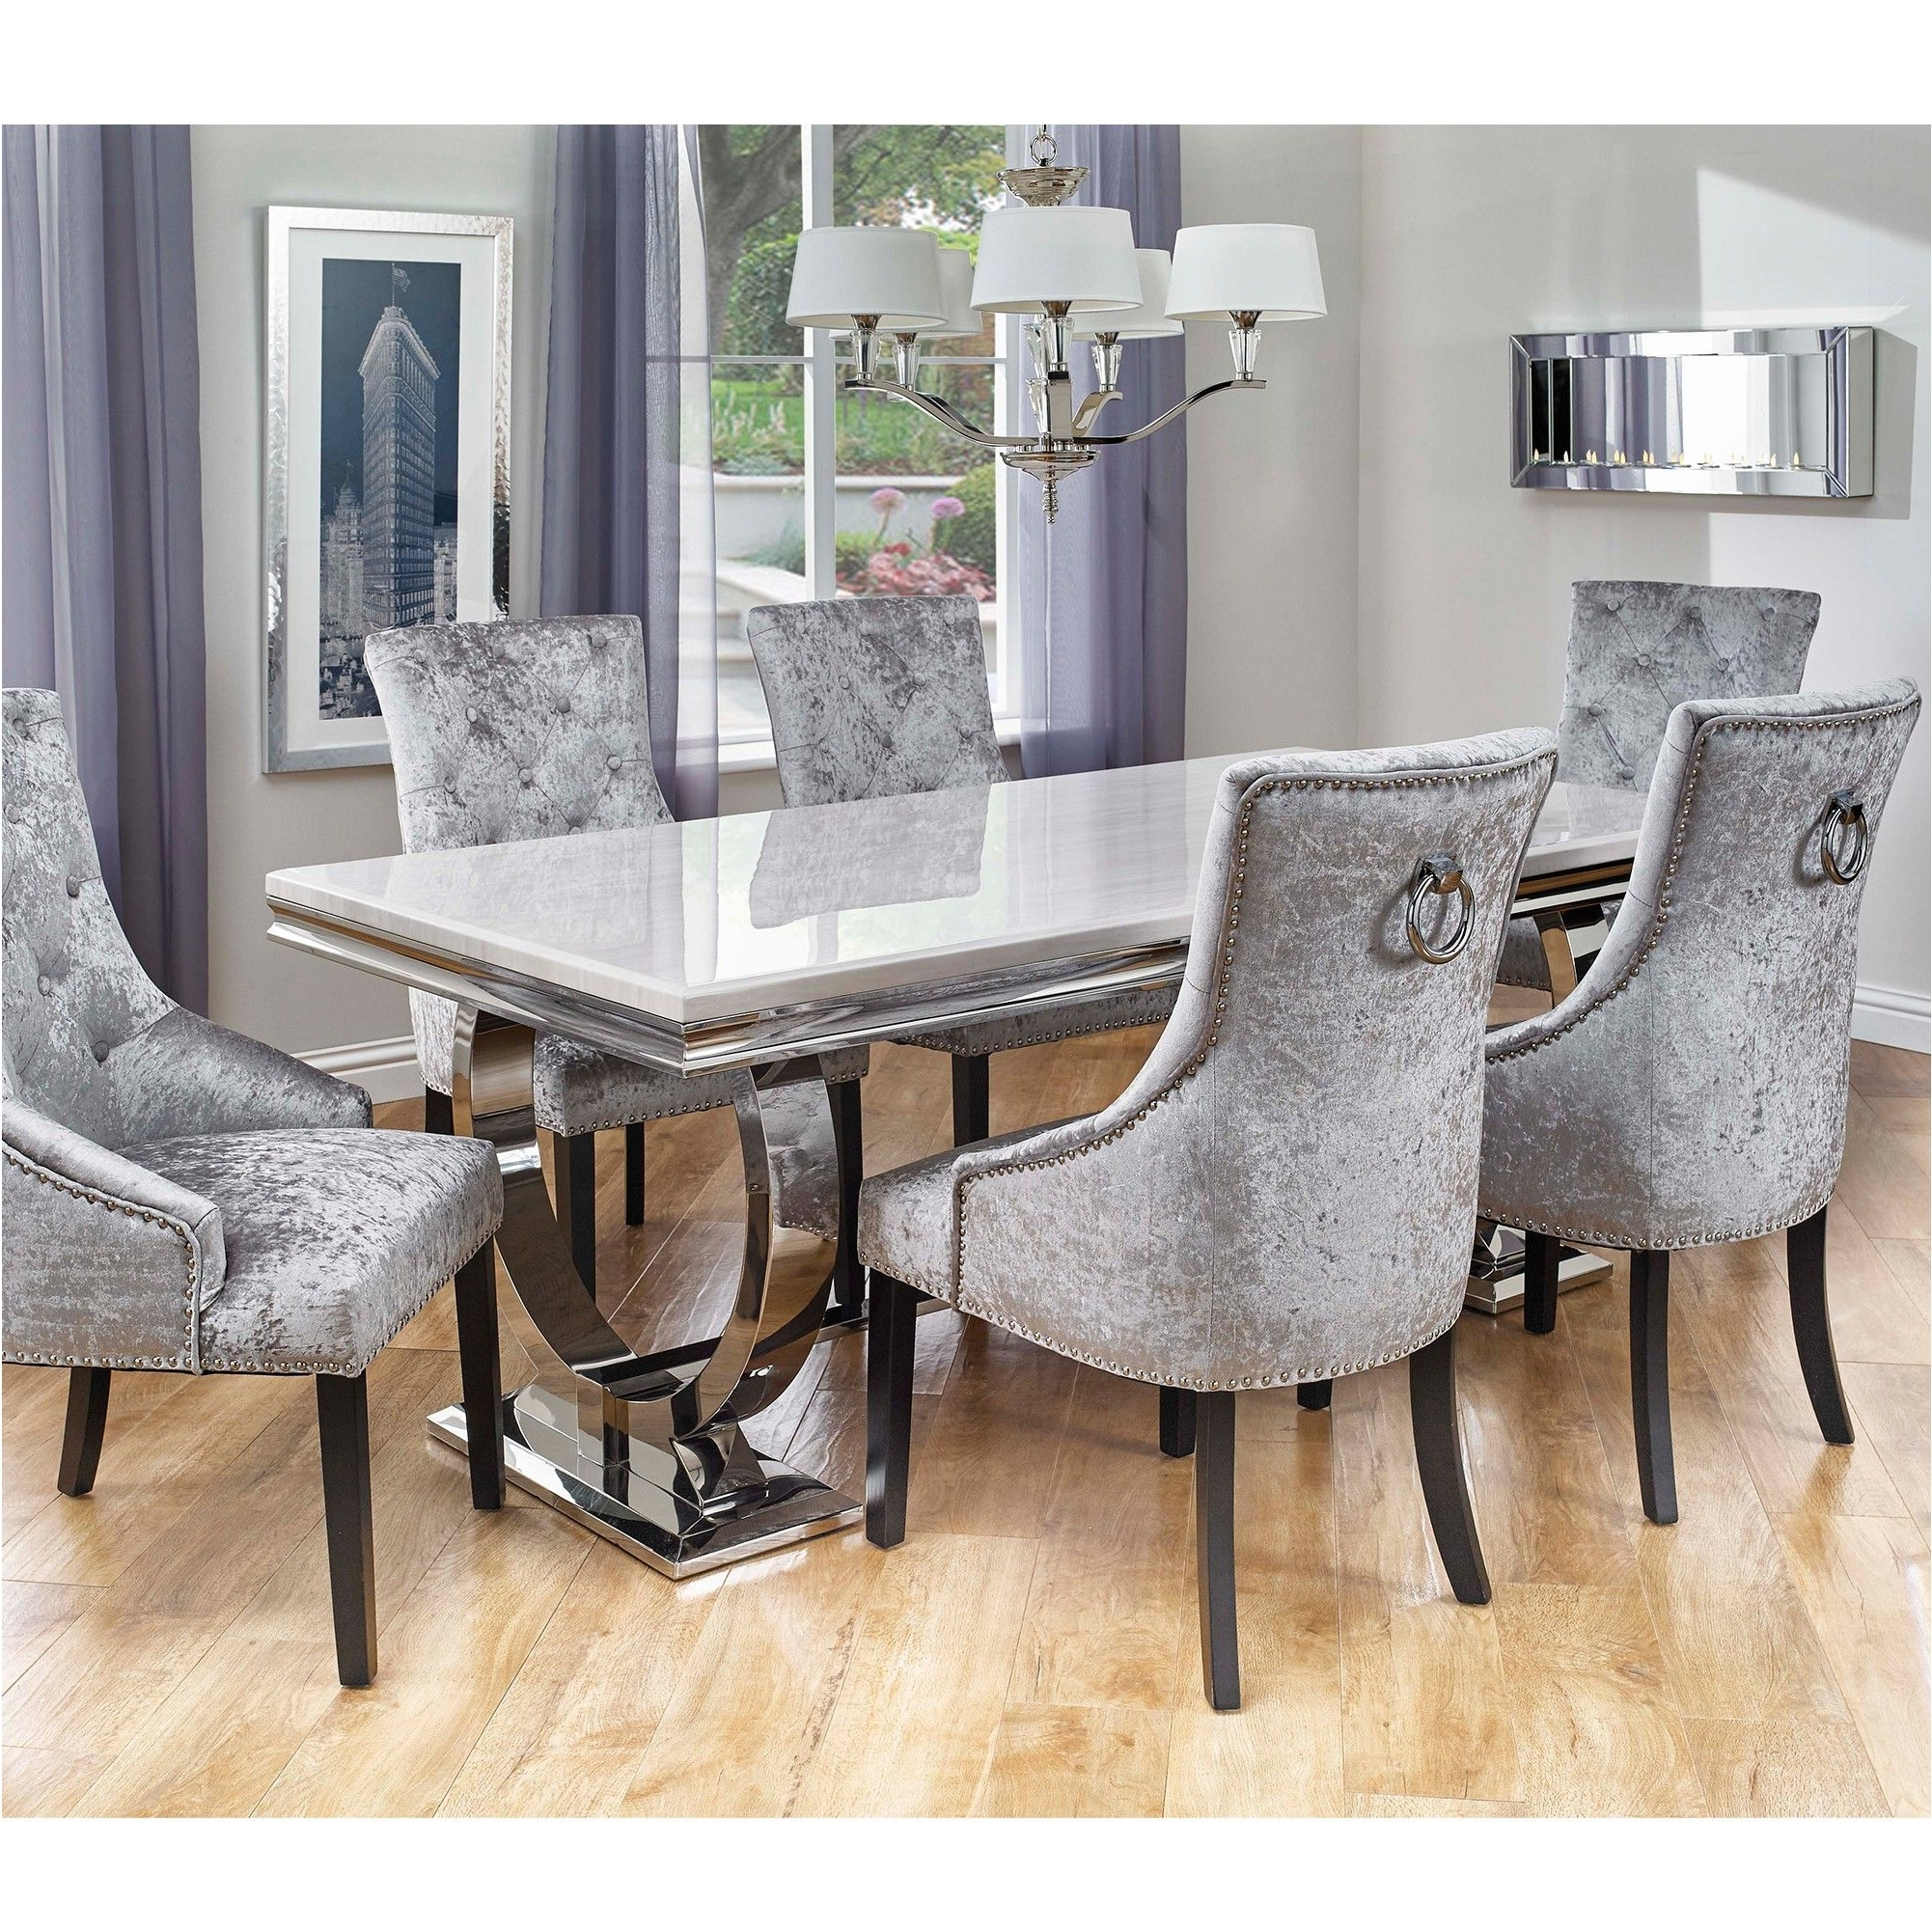 Latest 6 Chairs Dining Tables Throughout Spectacular Collection Valentina Dining Table And 6 Chairs Dining (View 4 of 25)